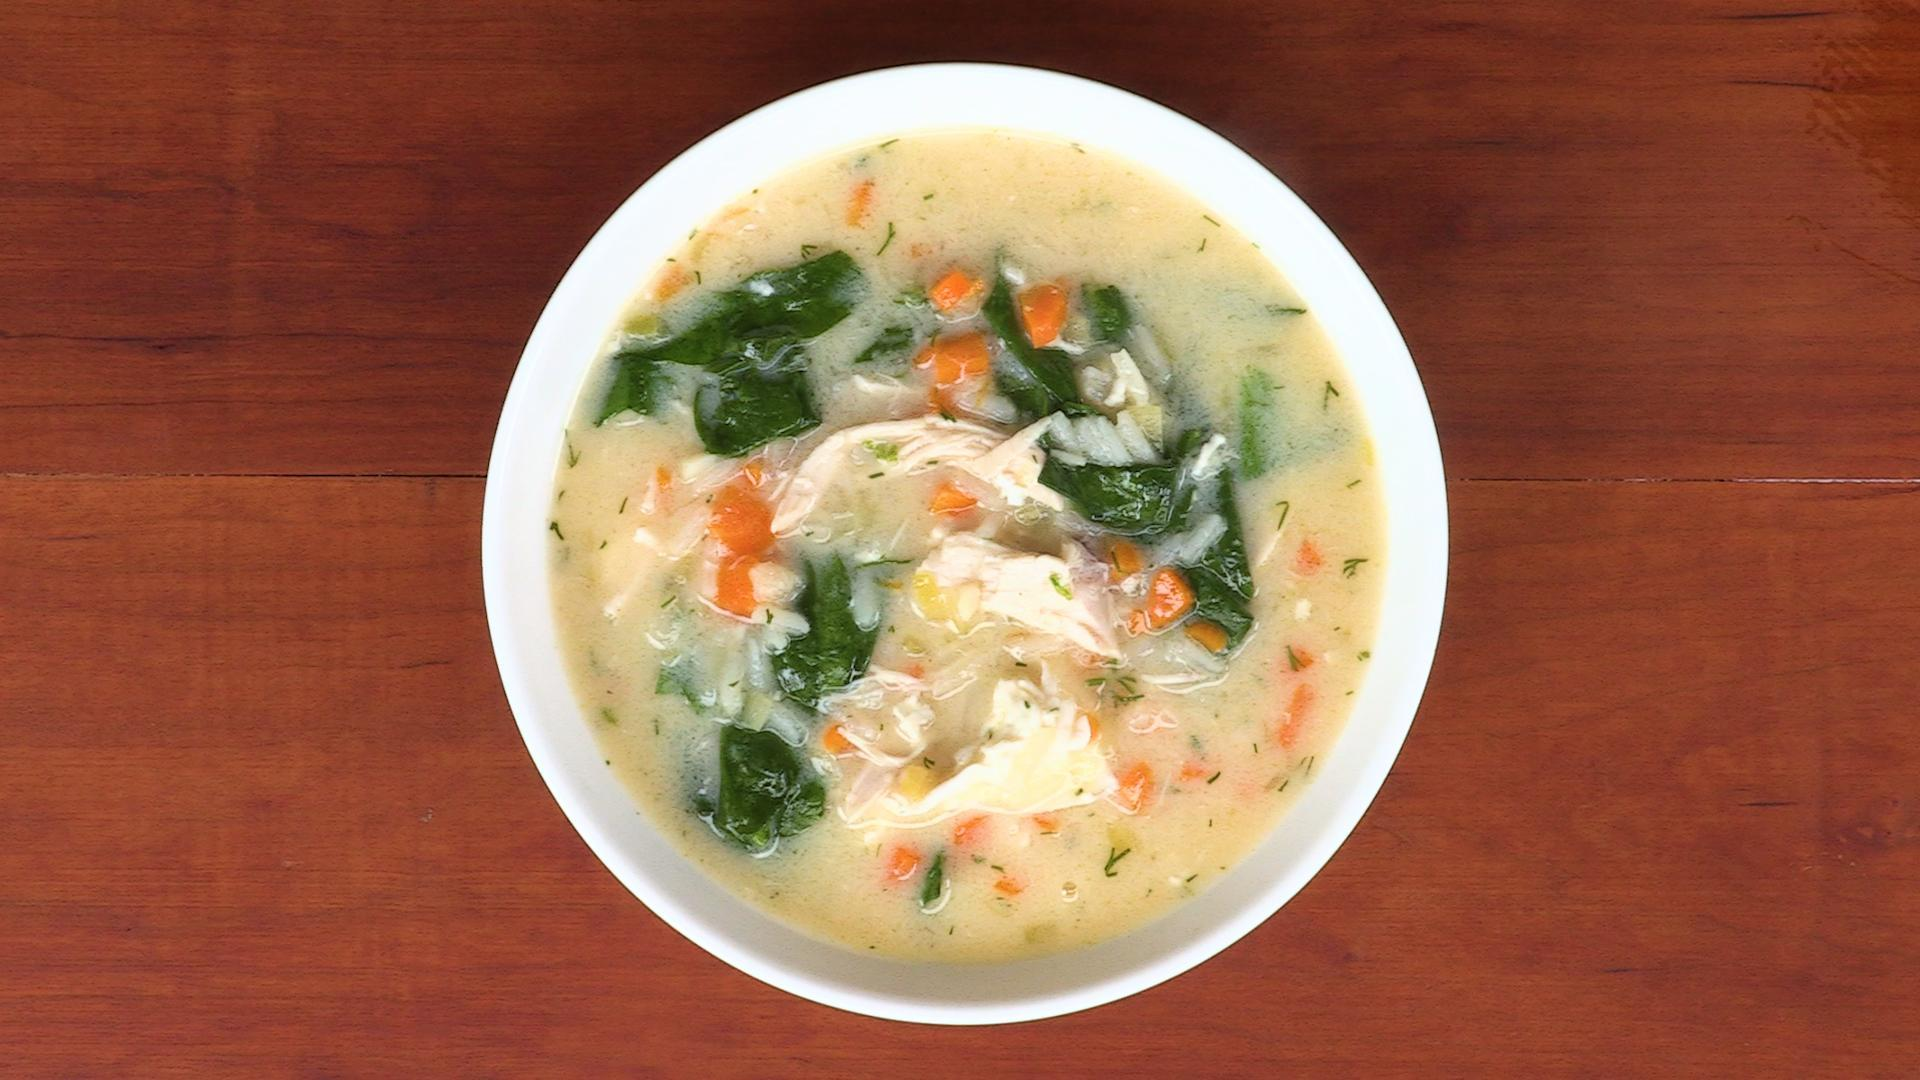 How to Make Lemony Chicken and Spinach Soup